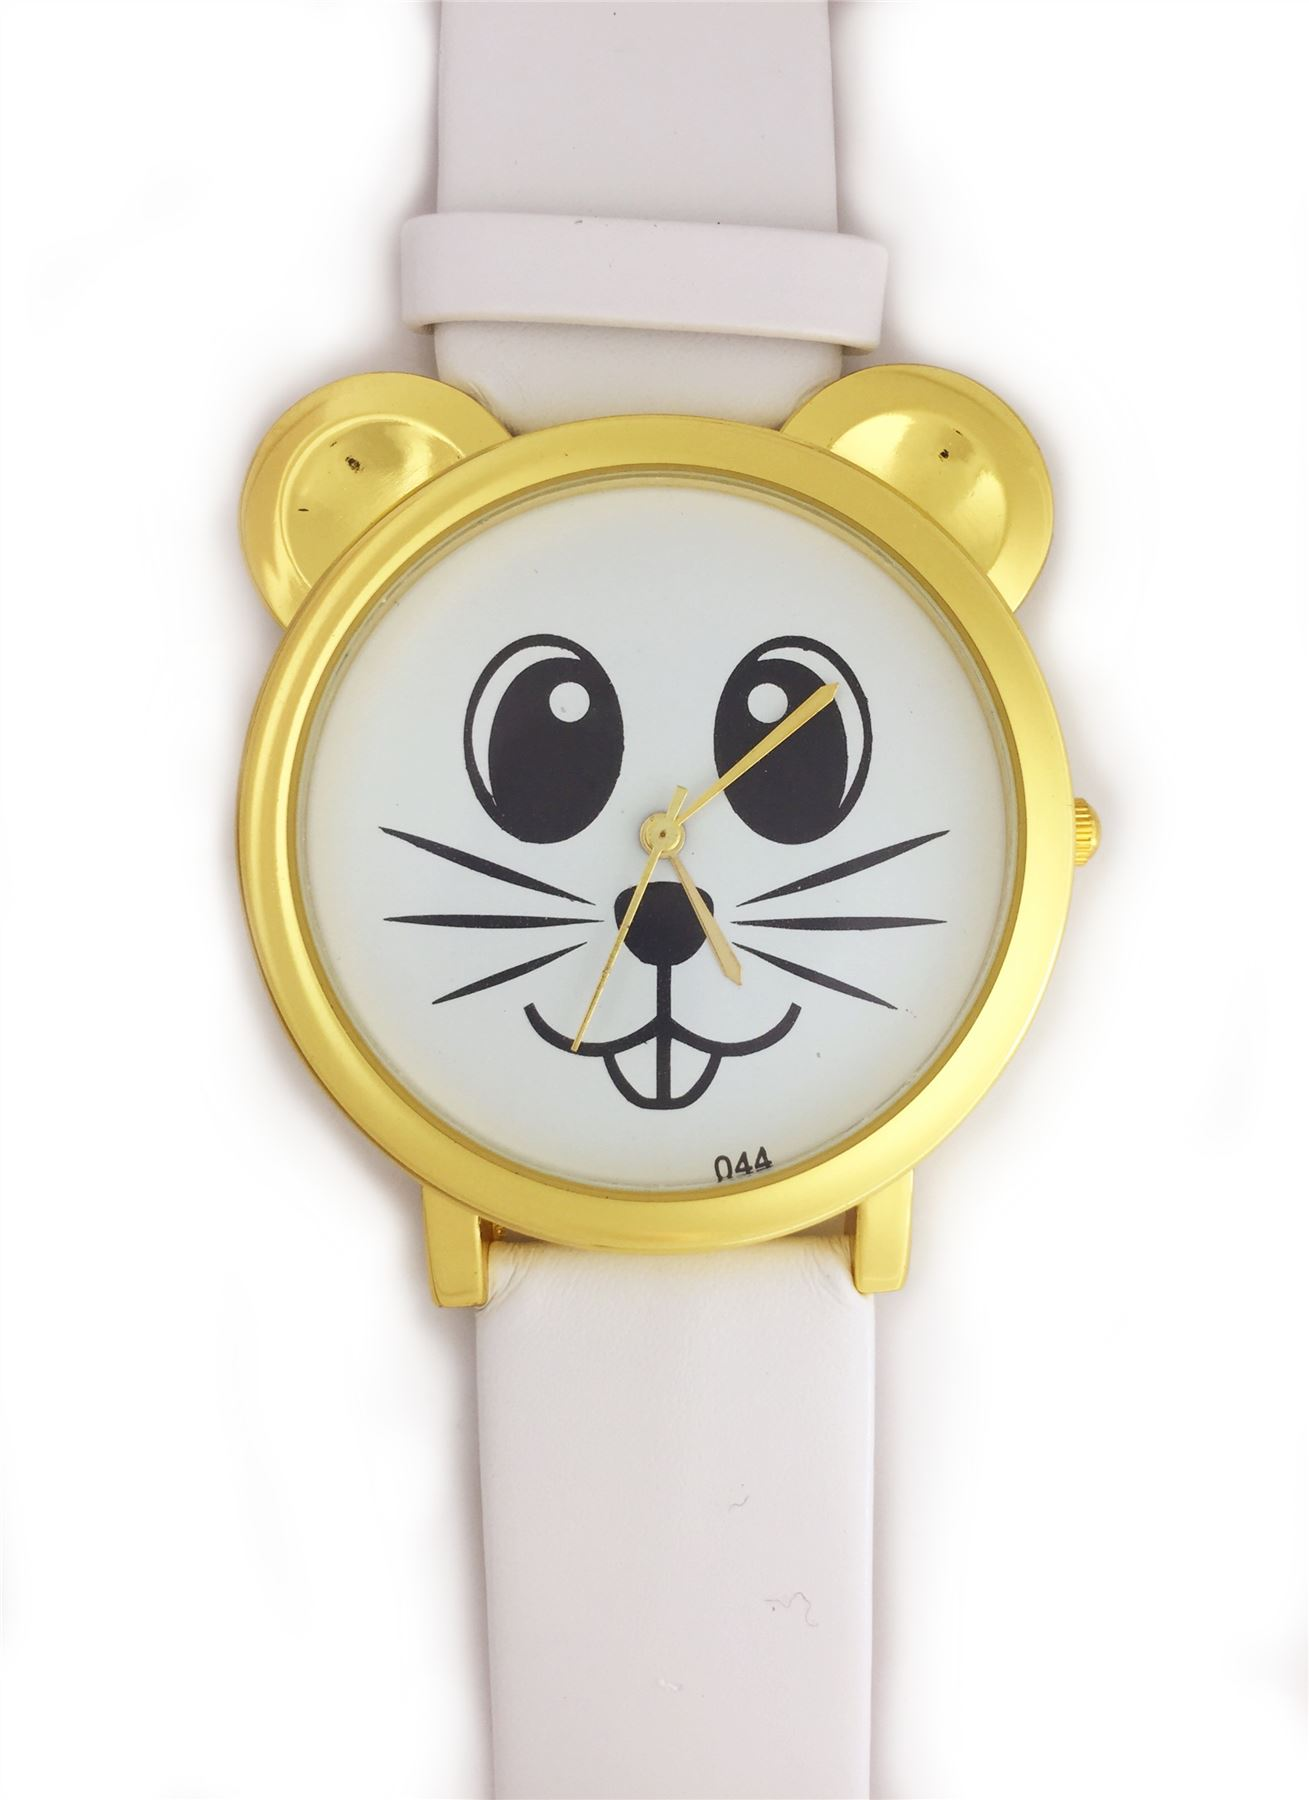 Cute-Mouse-Face-Wrist-Watch-With-Gold-Ears-And-Coloured-Strap-Hamster-Rat-D